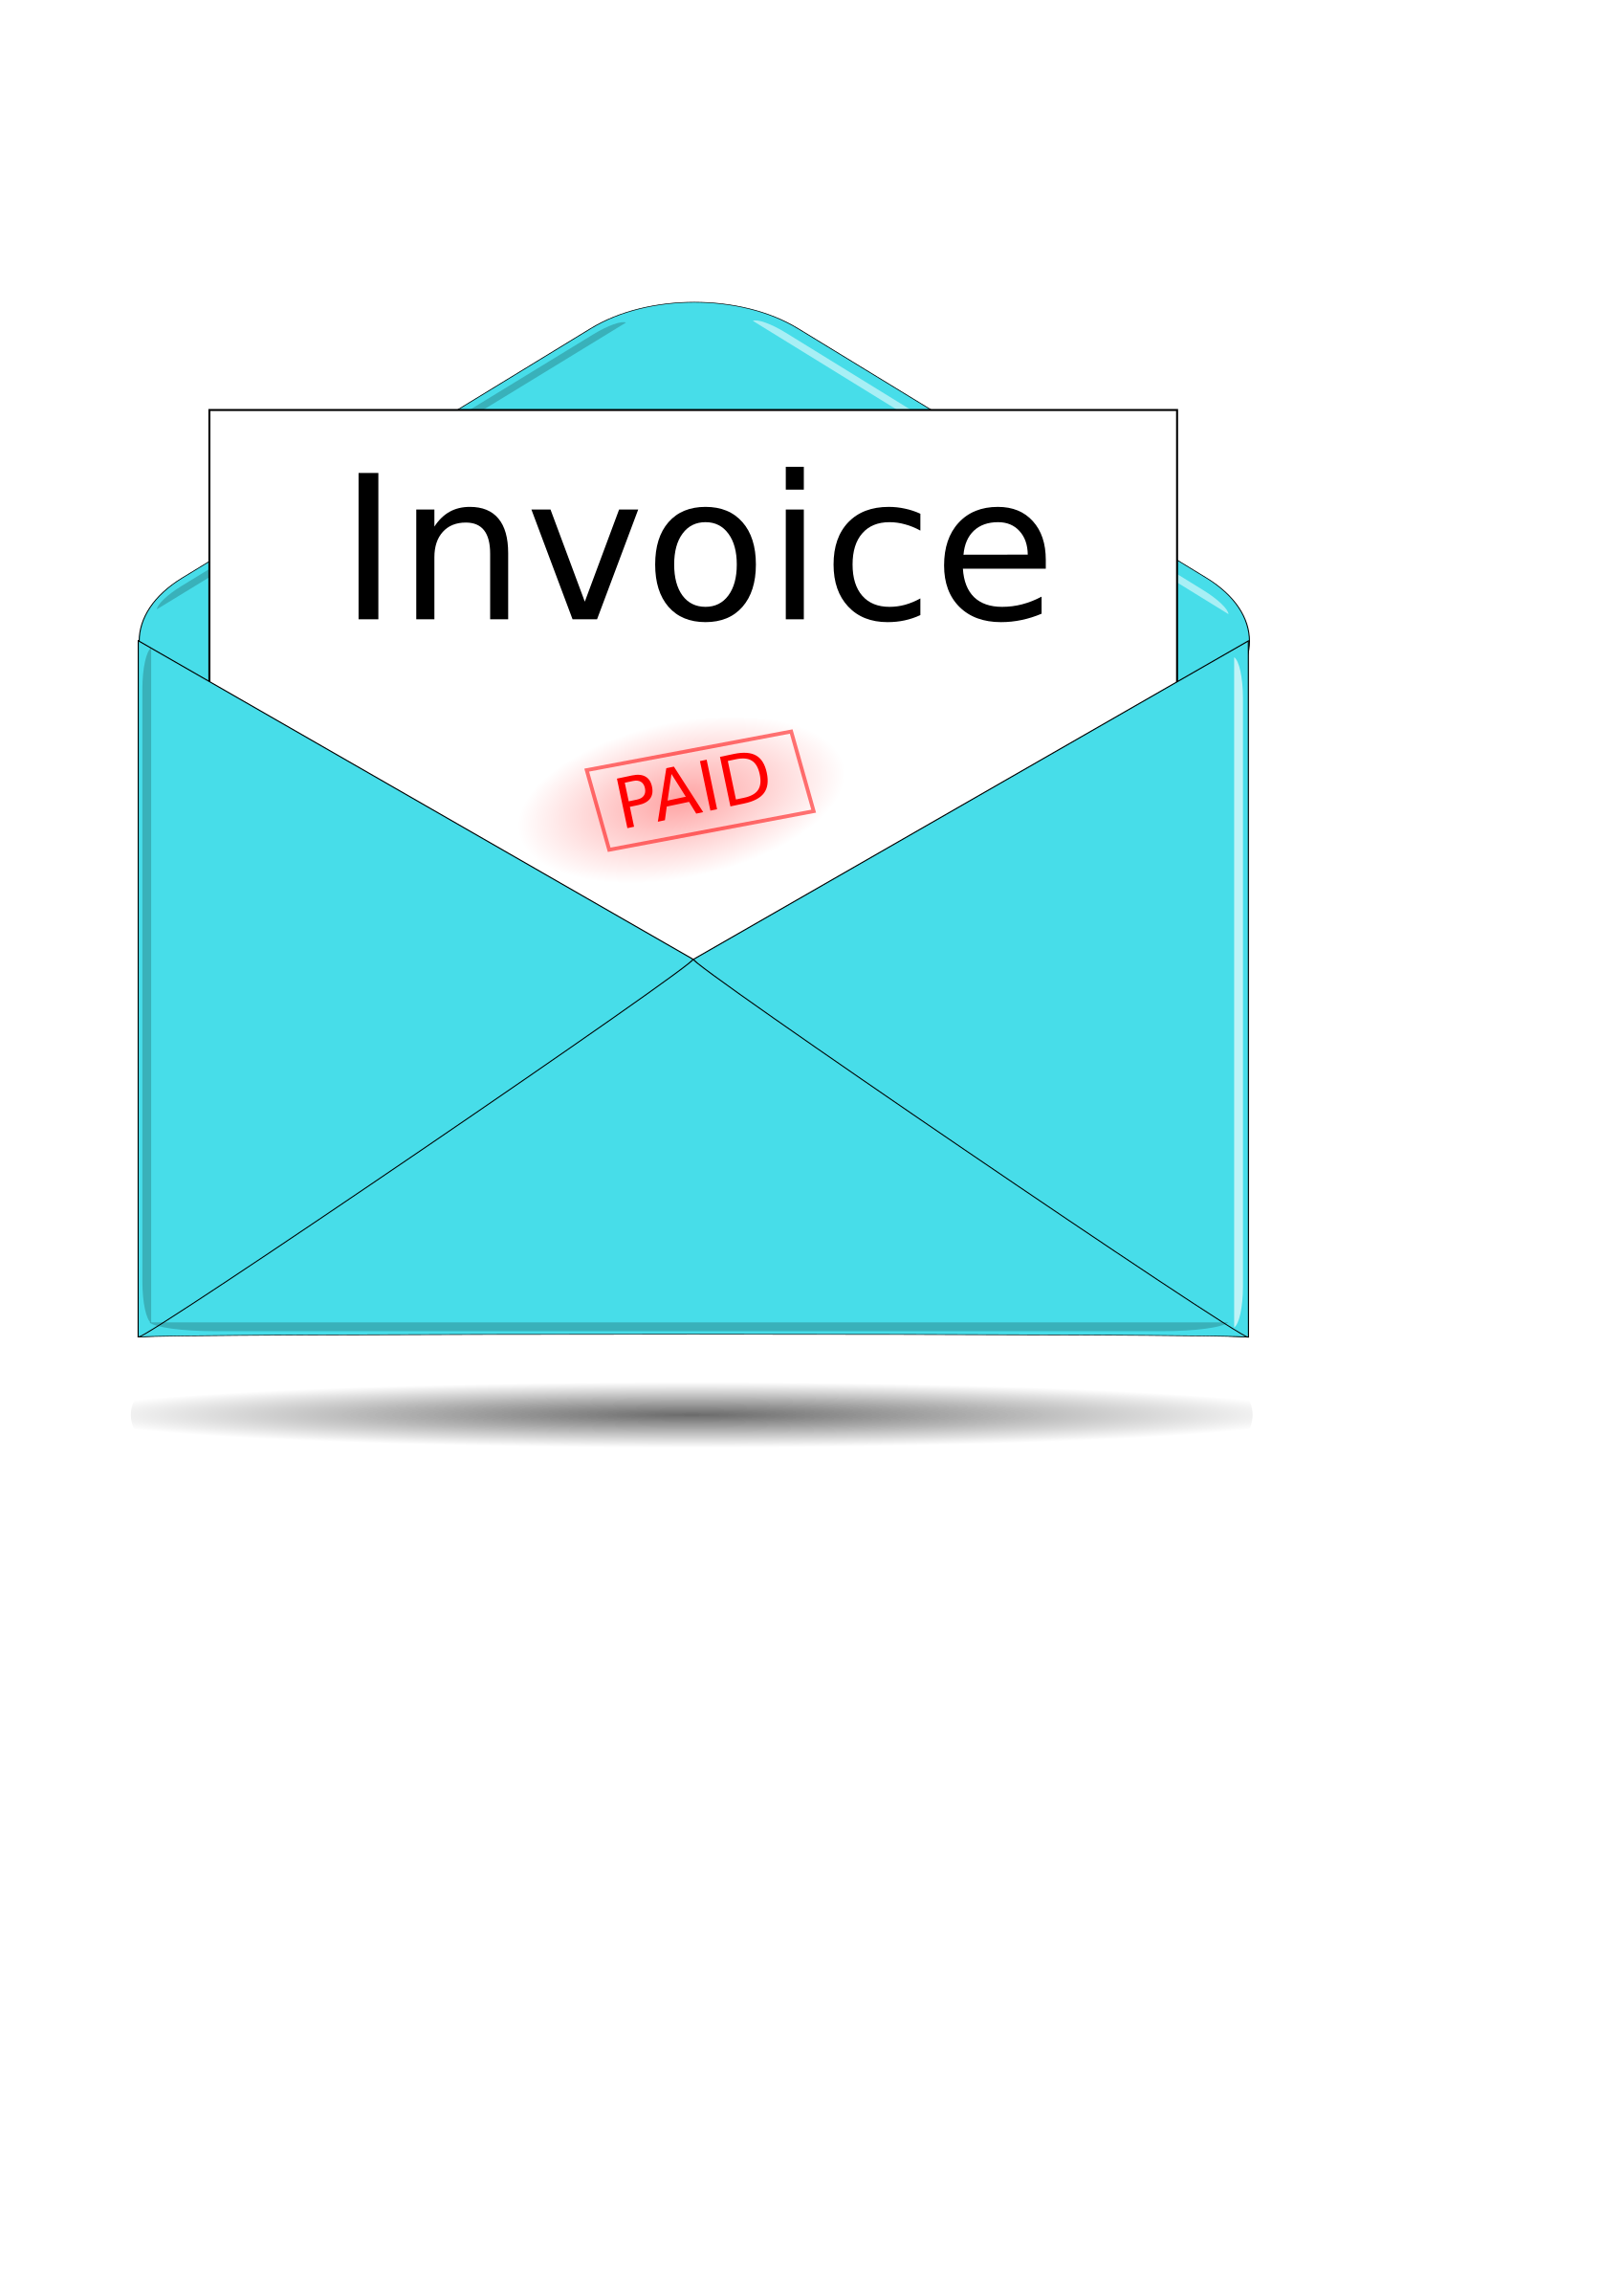 Reliefworkersus  Marvellous Clipart  Invoice With Goodlooking Big Image Png With Beautiful Self Billing Invoices Also Invoice Payment System In Addition How To Create An Invoice Using Excel And Difference Between Invoice Discounting And Factoring As Well As Invoice Template Services Rendered Additionally Performance Invoice Sample From Openclipartorg With Reliefworkersus  Goodlooking Clipart  Invoice With Beautiful Big Image Png And Marvellous Self Billing Invoices Also Invoice Payment System In Addition How To Create An Invoice Using Excel From Openclipartorg